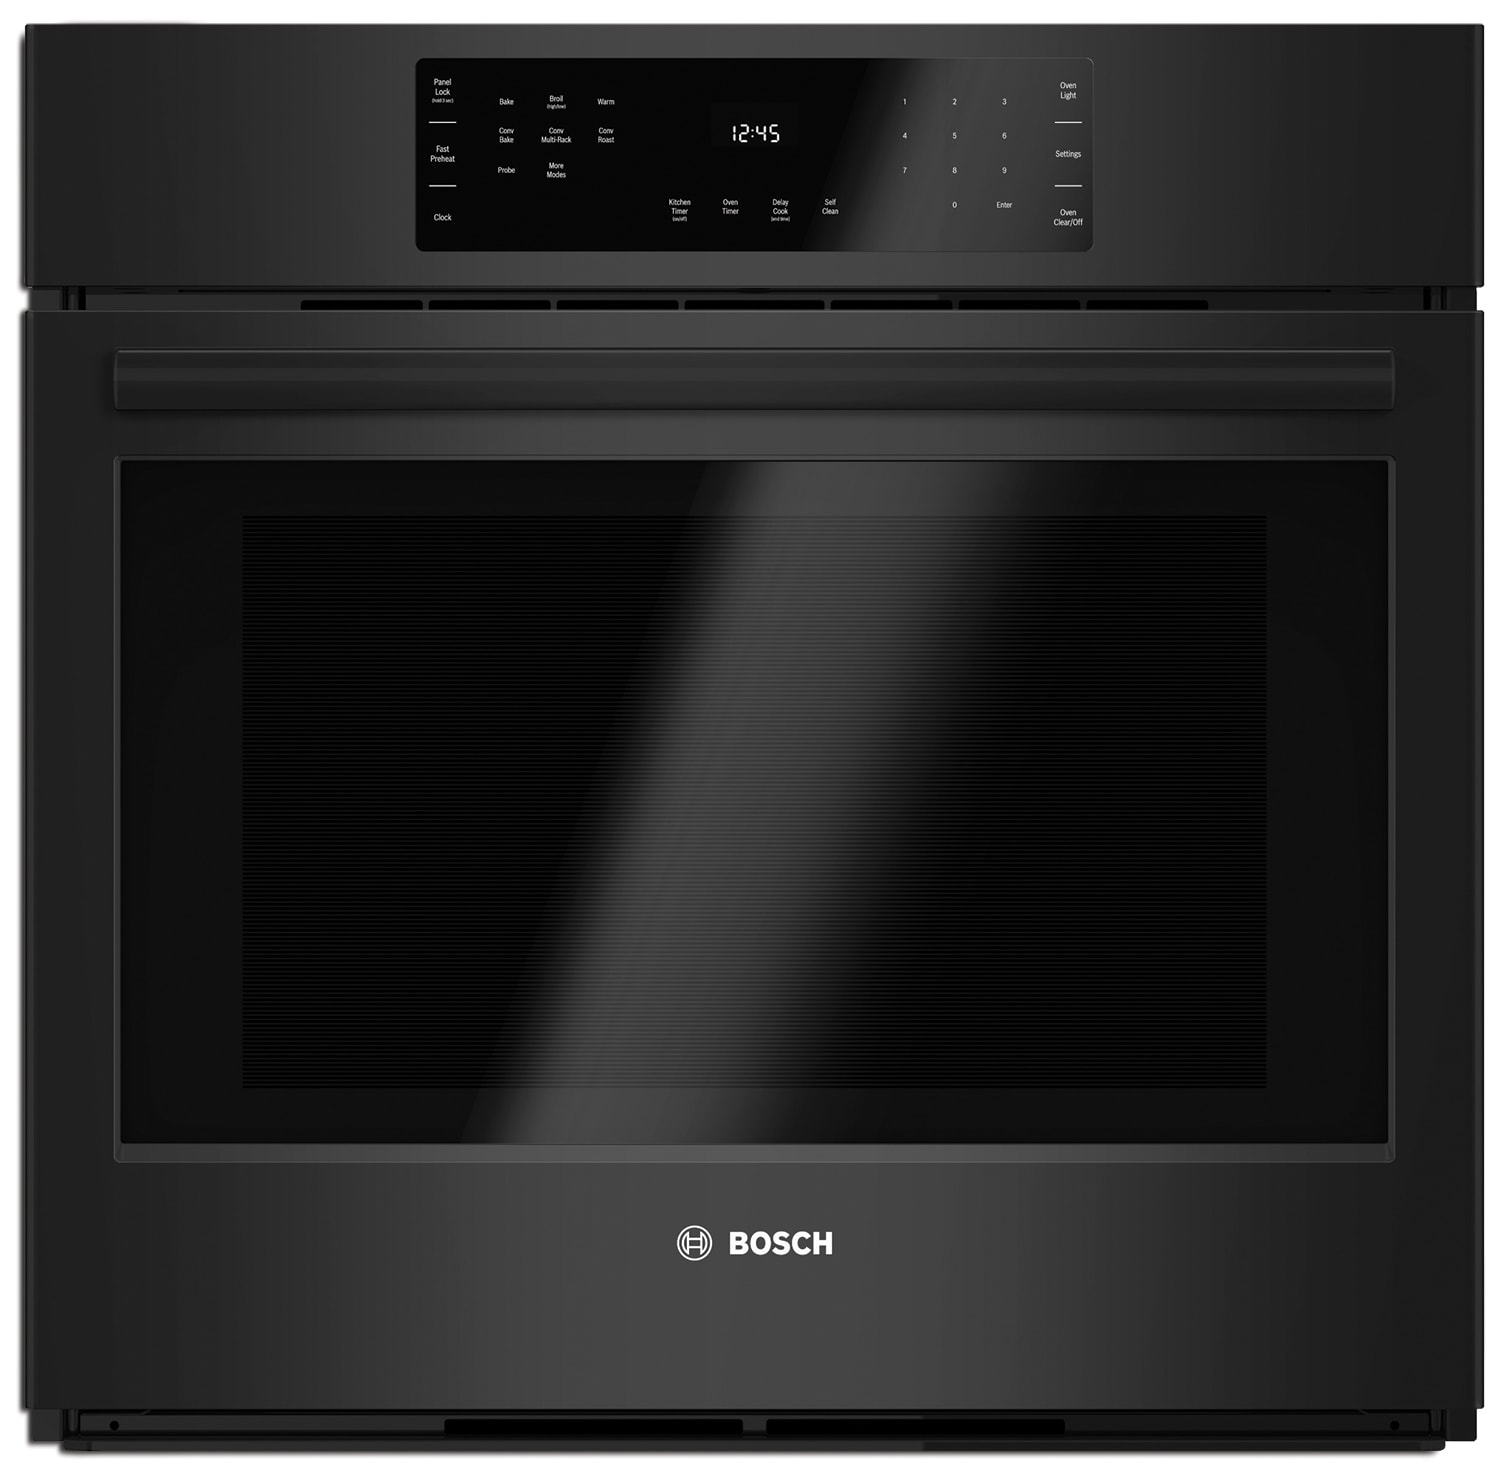 Bosch Black Wall Oven (4.6 Cu. Ft.) - HBL8461UC